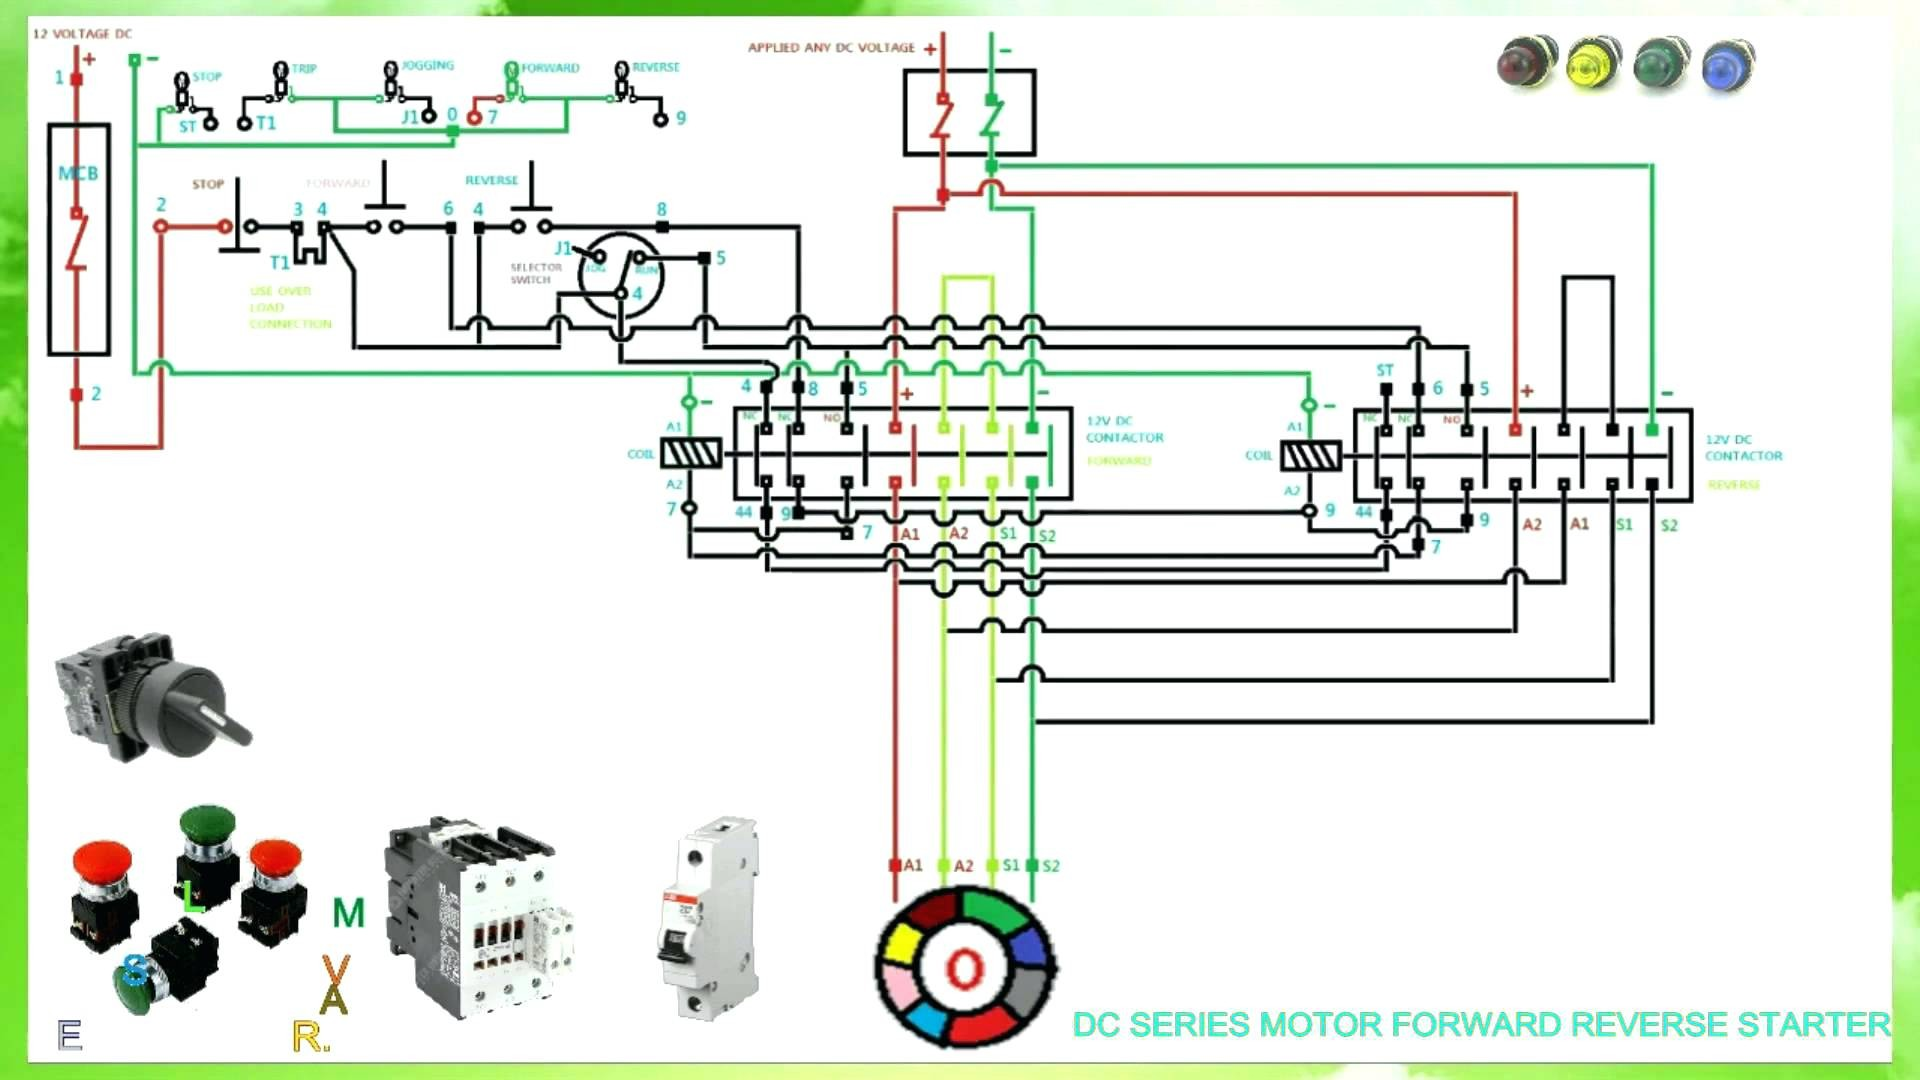 3 Phase Starter Wiring Diagram Ponent How To Wire A Motor Siemens Magnetic Dol Control For Forward Reverse